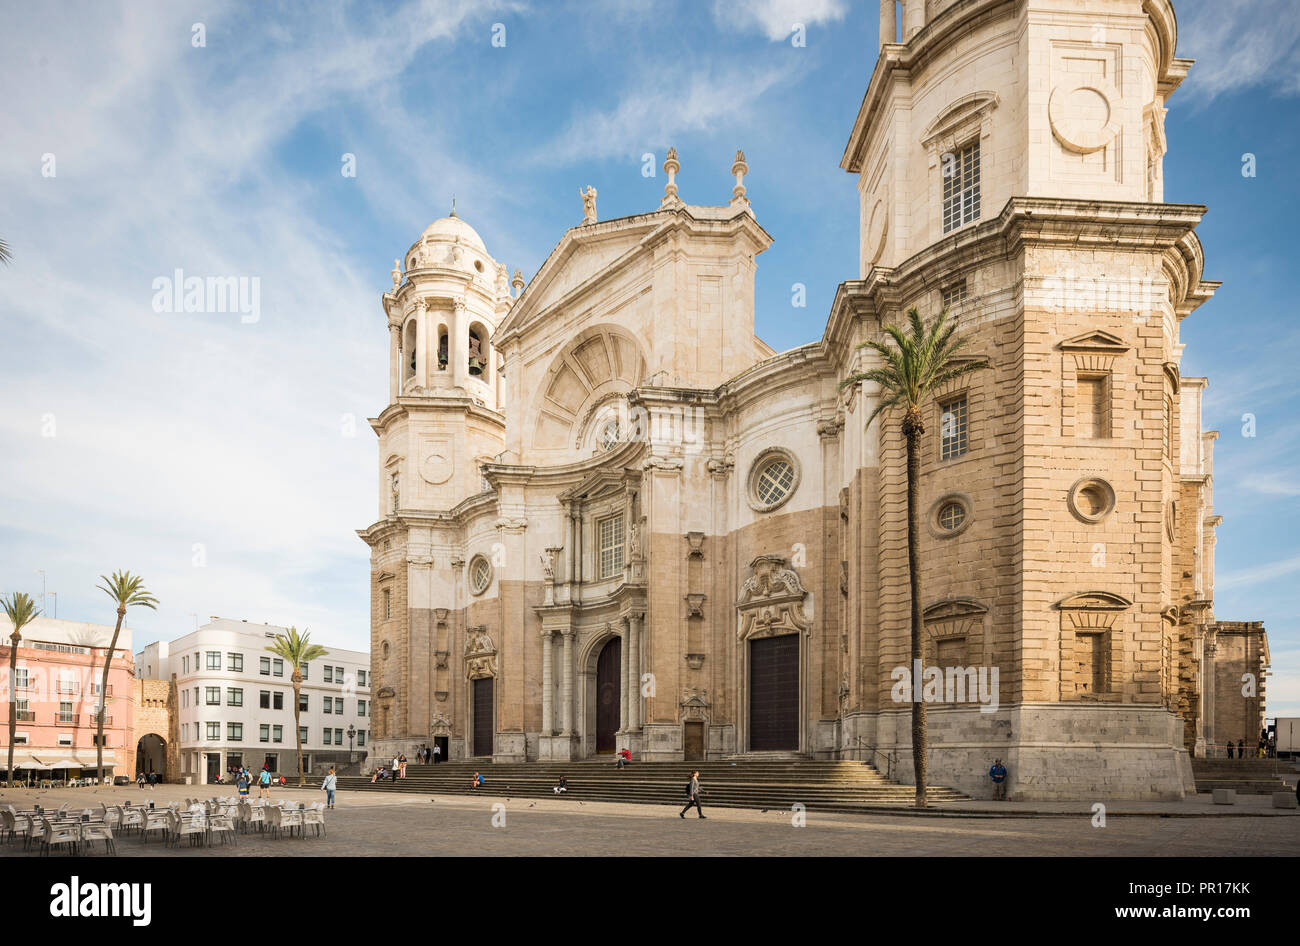 Exterior of Cathedral, Cadiz, Andalucia, Spain, Europe - Stock Image